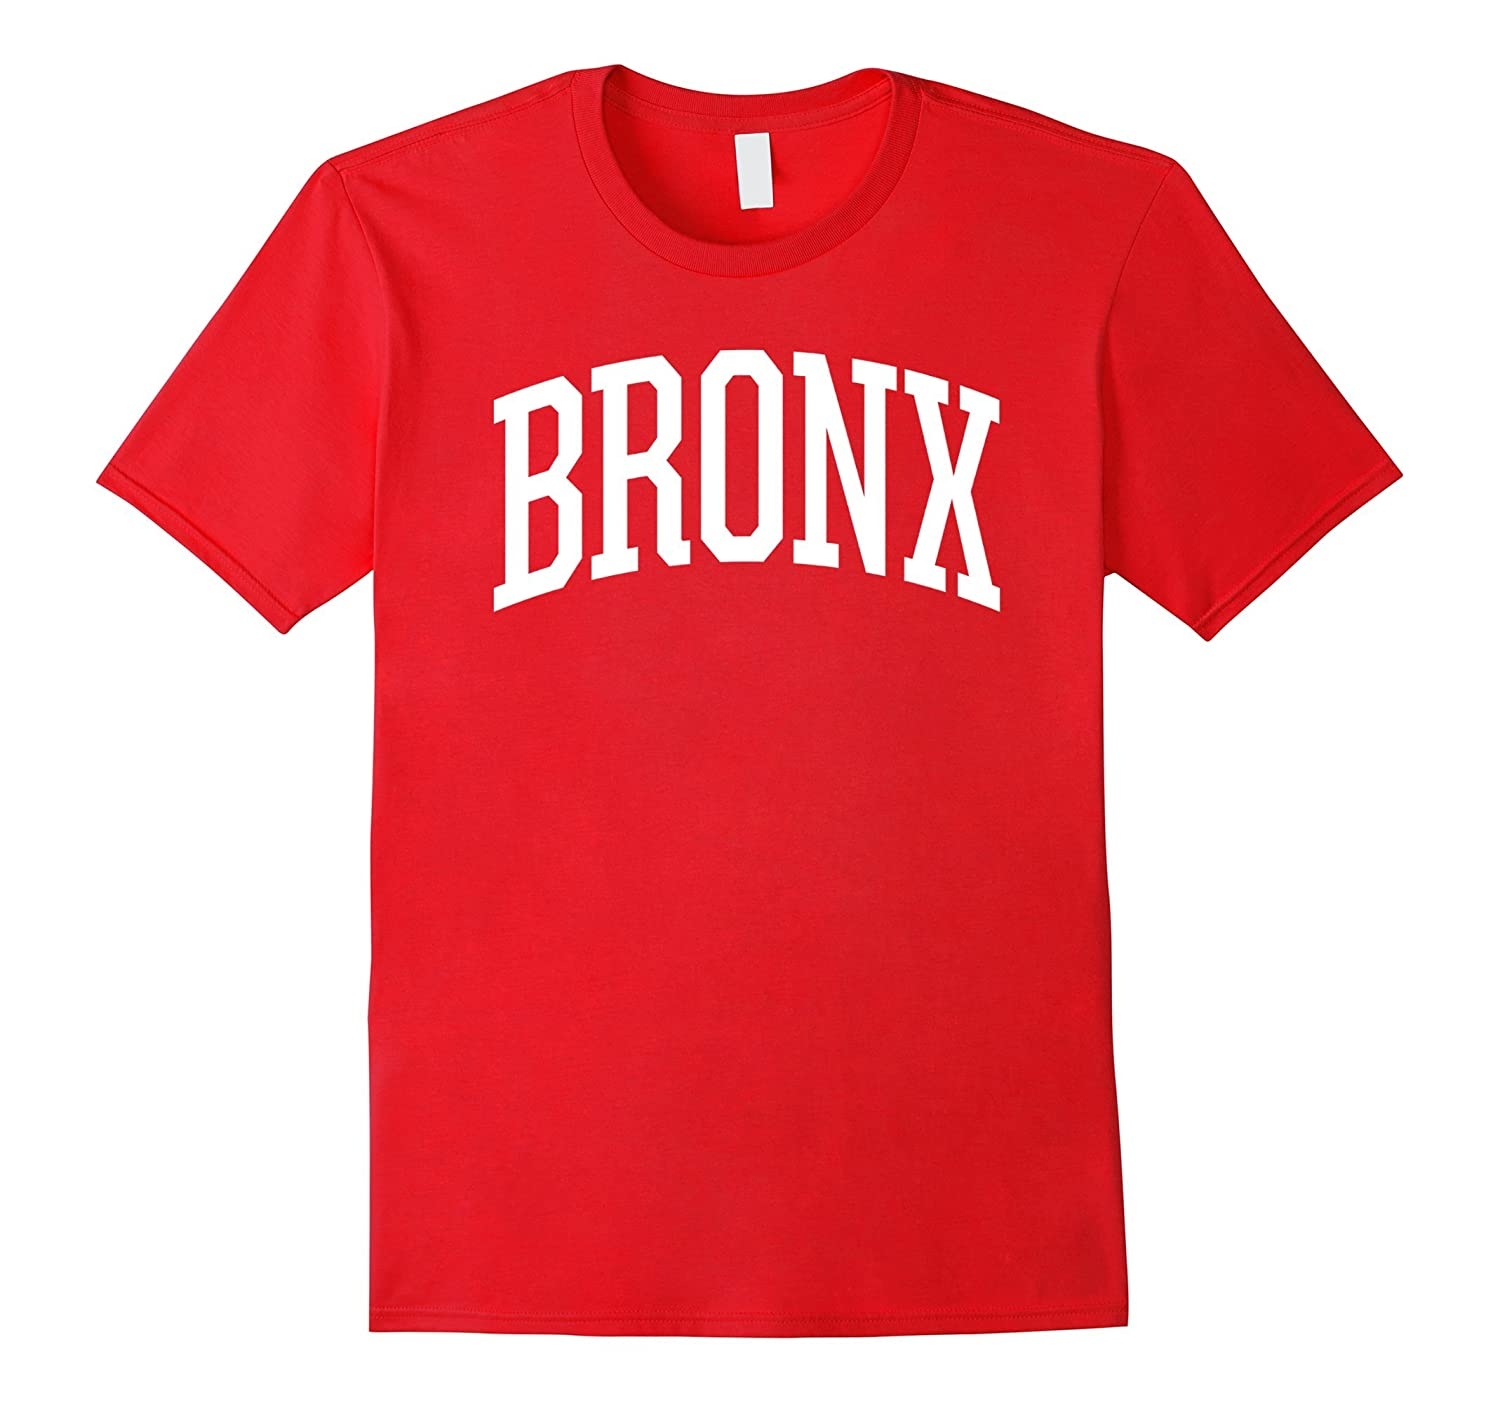 Bronx NY T-Shirt  Bronx Sports College-Style T NYC-RT